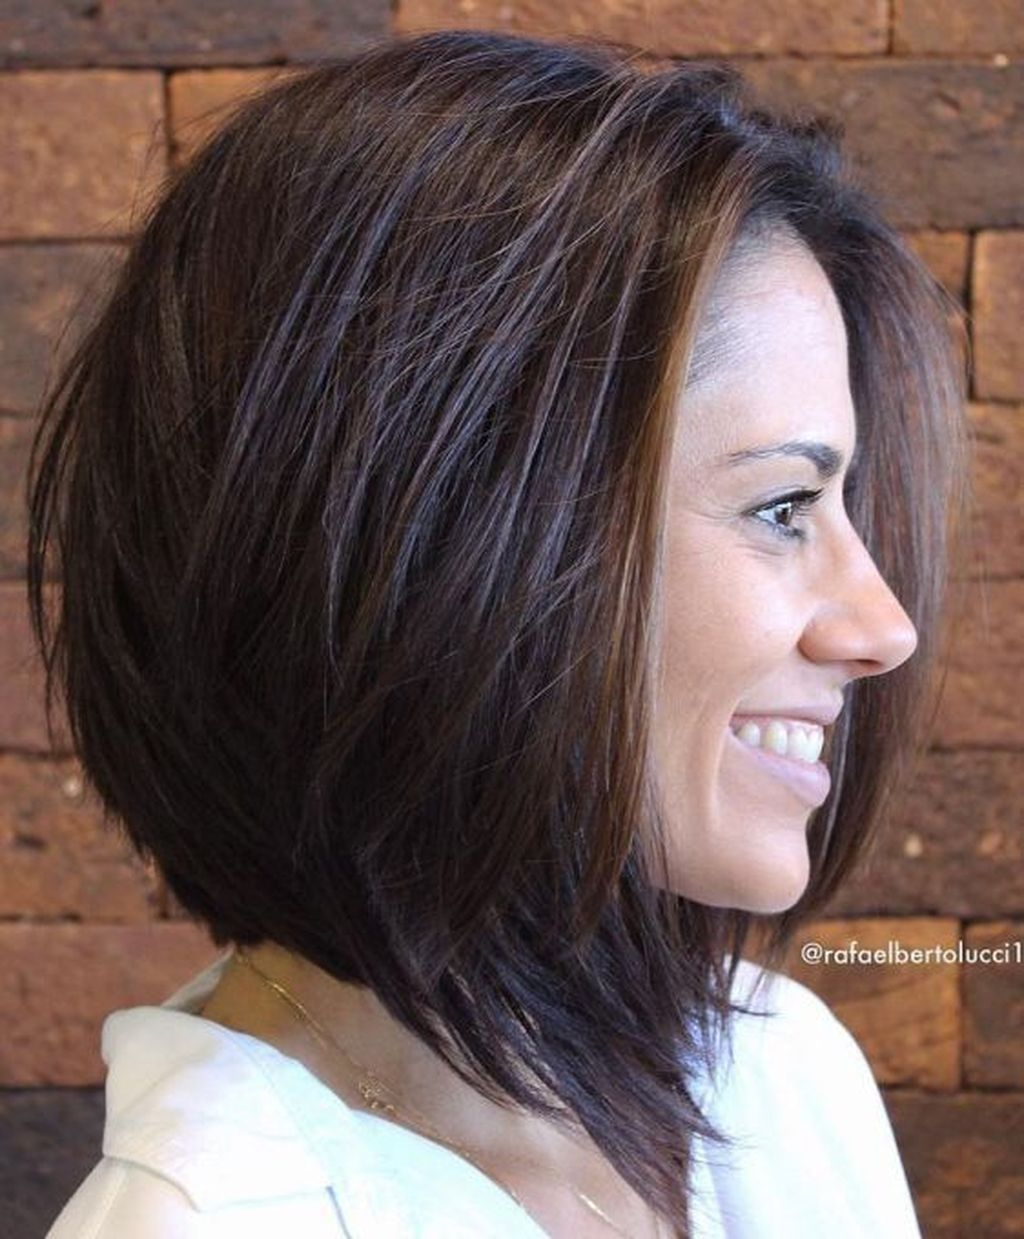 Stylish Short Hairstyles Ideas For Women With Thick Hair